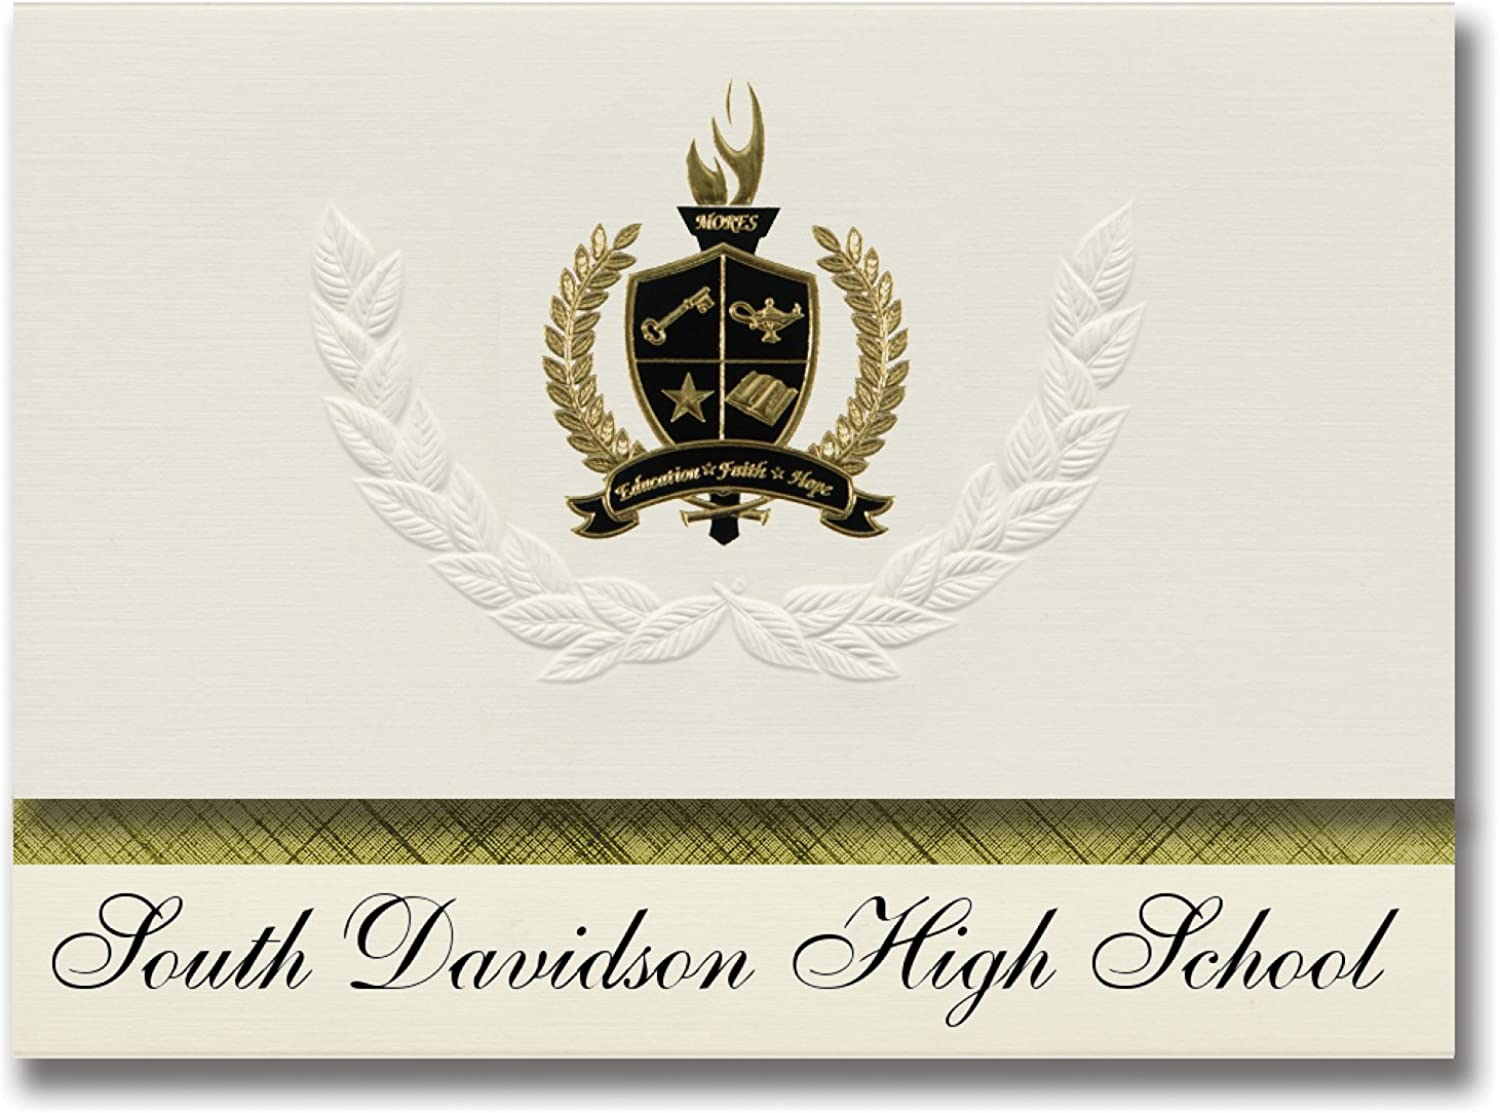 Signature Ankündigungen South Davidson High School (Denton, NC) Graduation Ankündigungen, Presidential Stil, Elite Paket 25 Stück mit Gold & Schwarz Metallic Folie Dichtung B078VCBJ97   | Zuverlässige Leistung